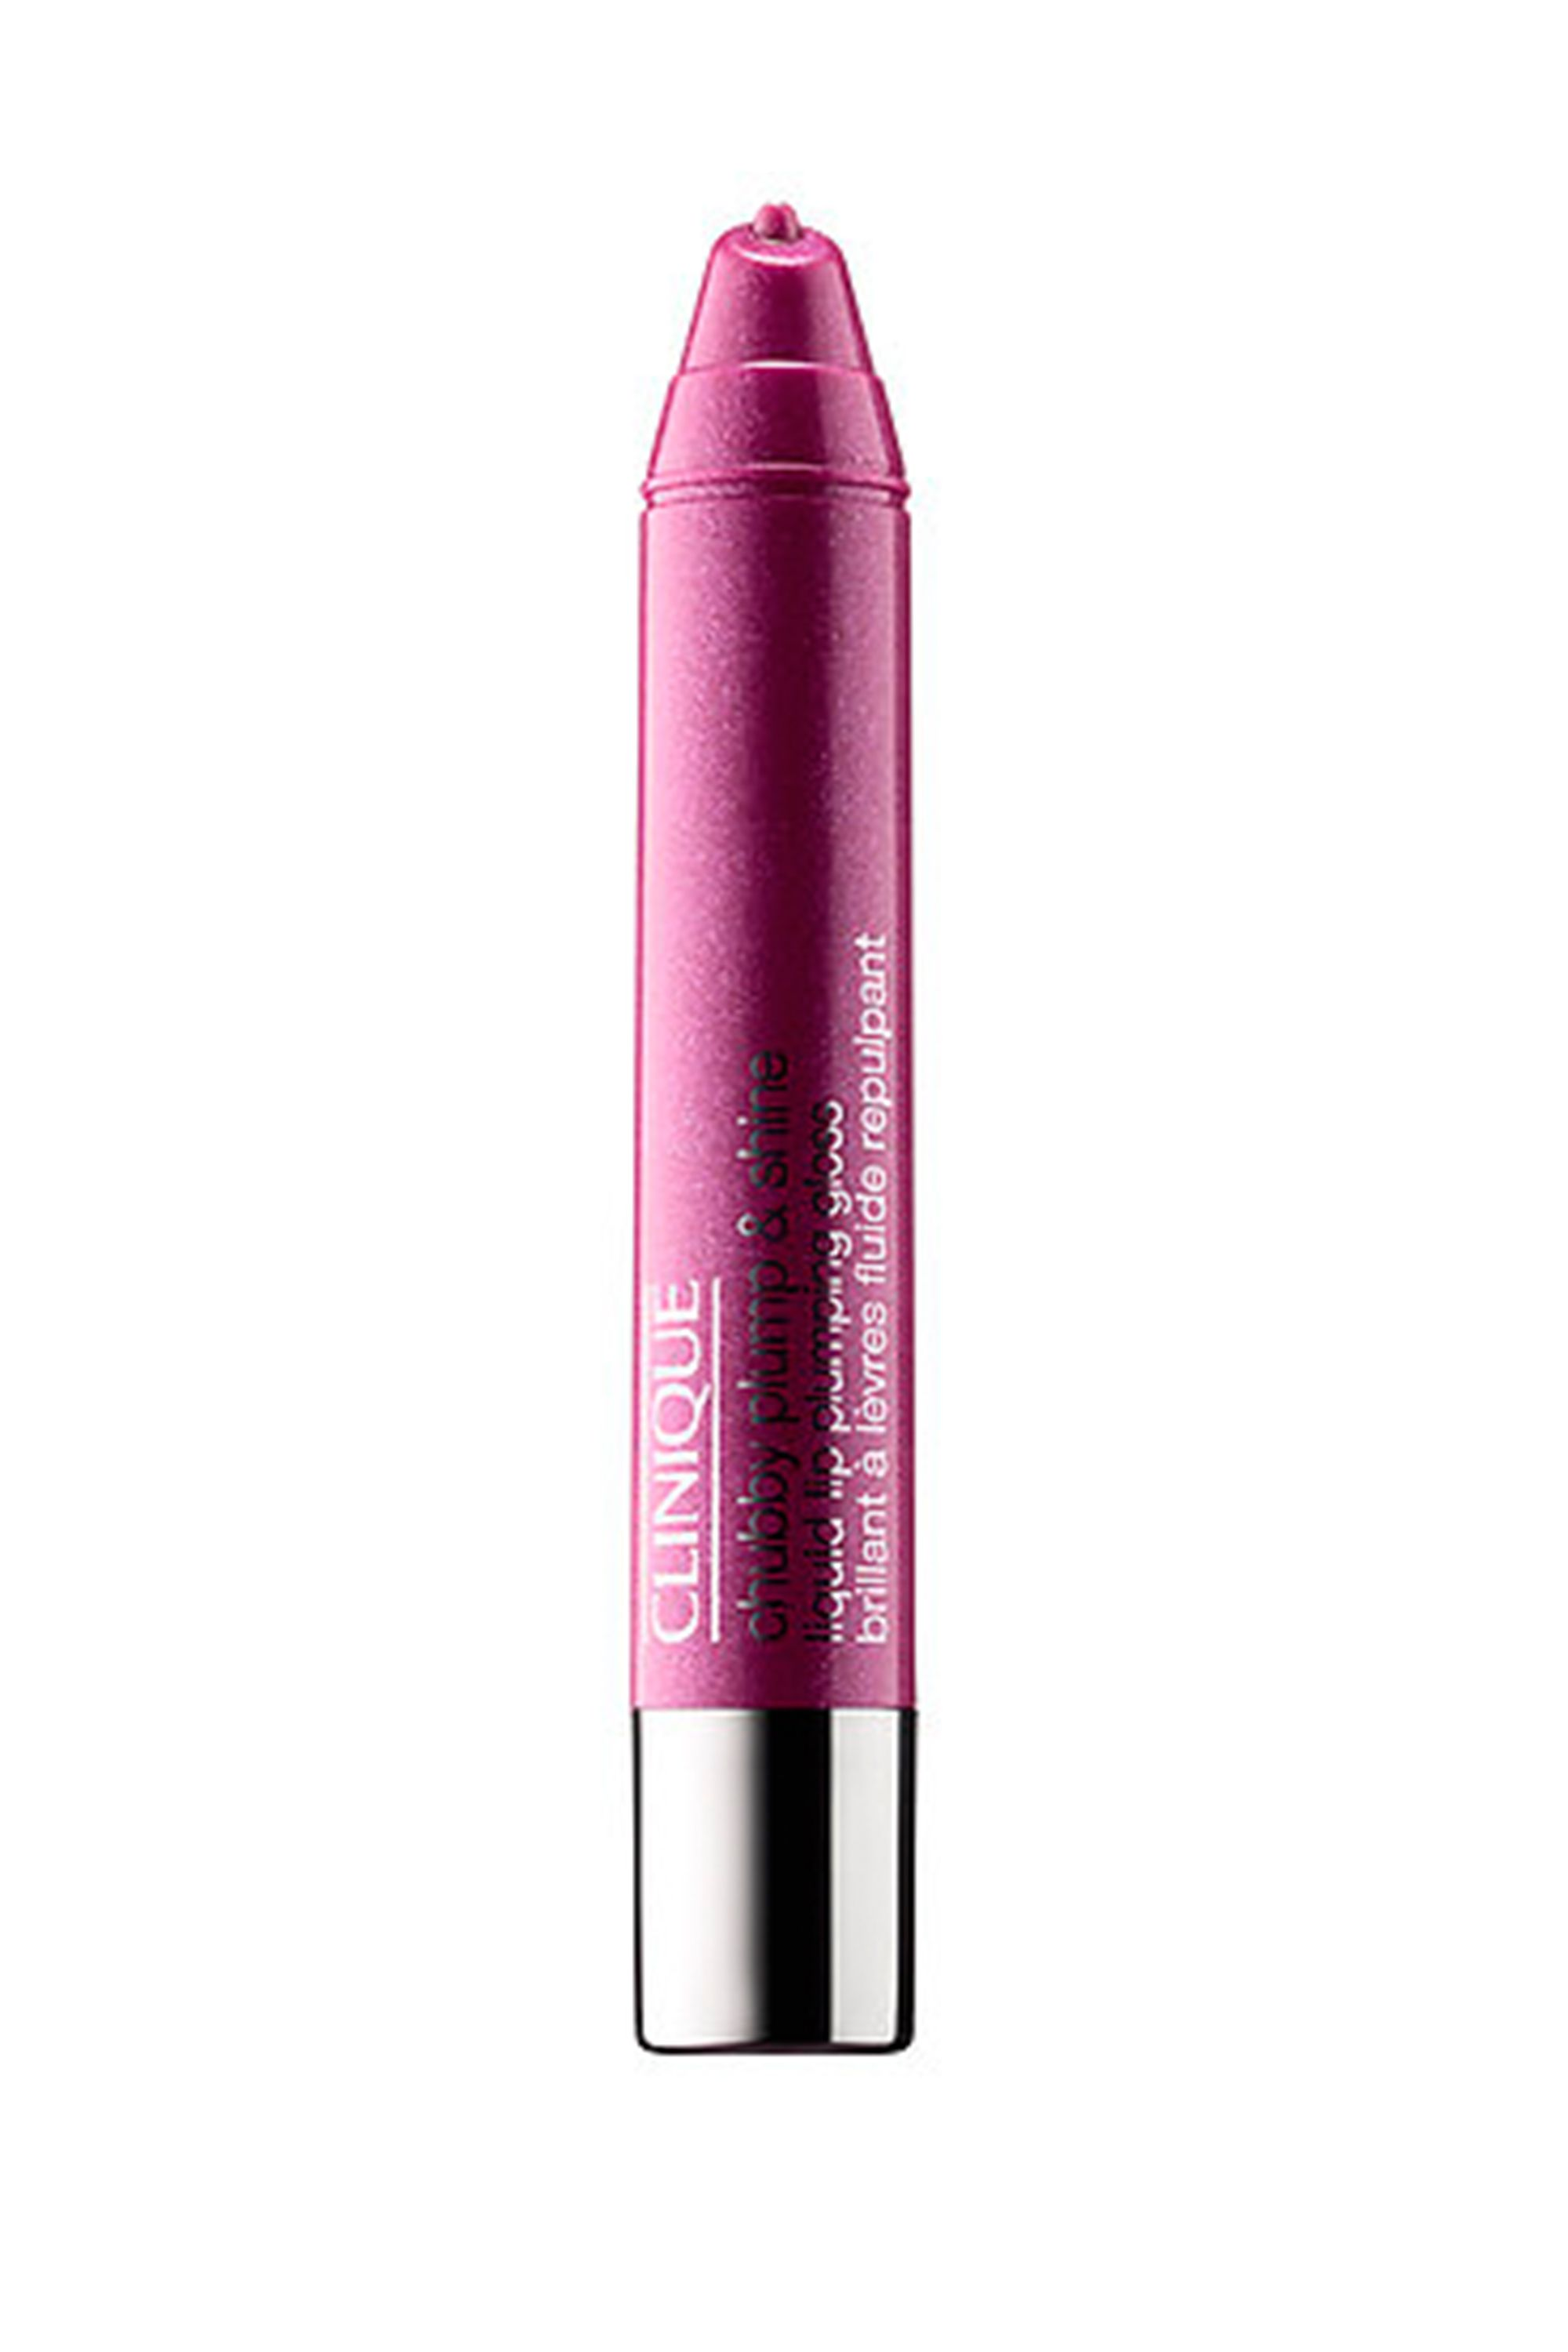 """<p>Pump up the volume with a couple of swipes of this super shiny, lip-plumping gloss in a wearable warm purple.</p><p><em data-redactor-tag=""""em"""" data-verified=""""redactor"""">$17, </em><a href=""""http://www.clinique.com/product/1603/45451/makeup/lip-glosses/chubby-plump-shine-liquid-lip-plumping-gloss"""" data-tracking-id=""""recirc-text-link""""><em data-redactor-tag=""""em"""" data-verified=""""redactor"""">clinique.com</em></a></p>"""